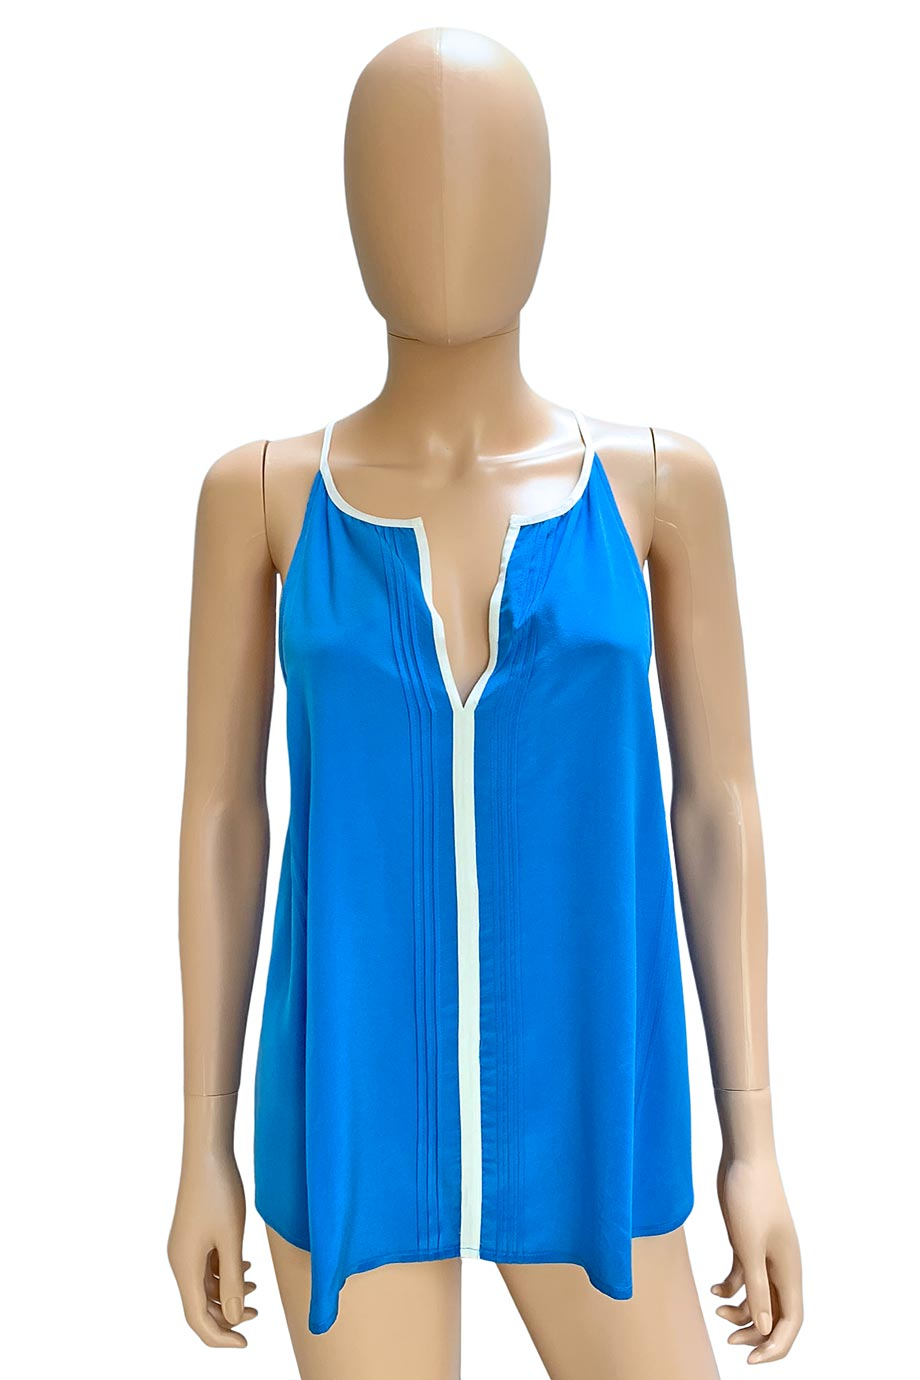 Joie Marine Blue Pleated Silk Odilon Sleeveless Top / Sz M